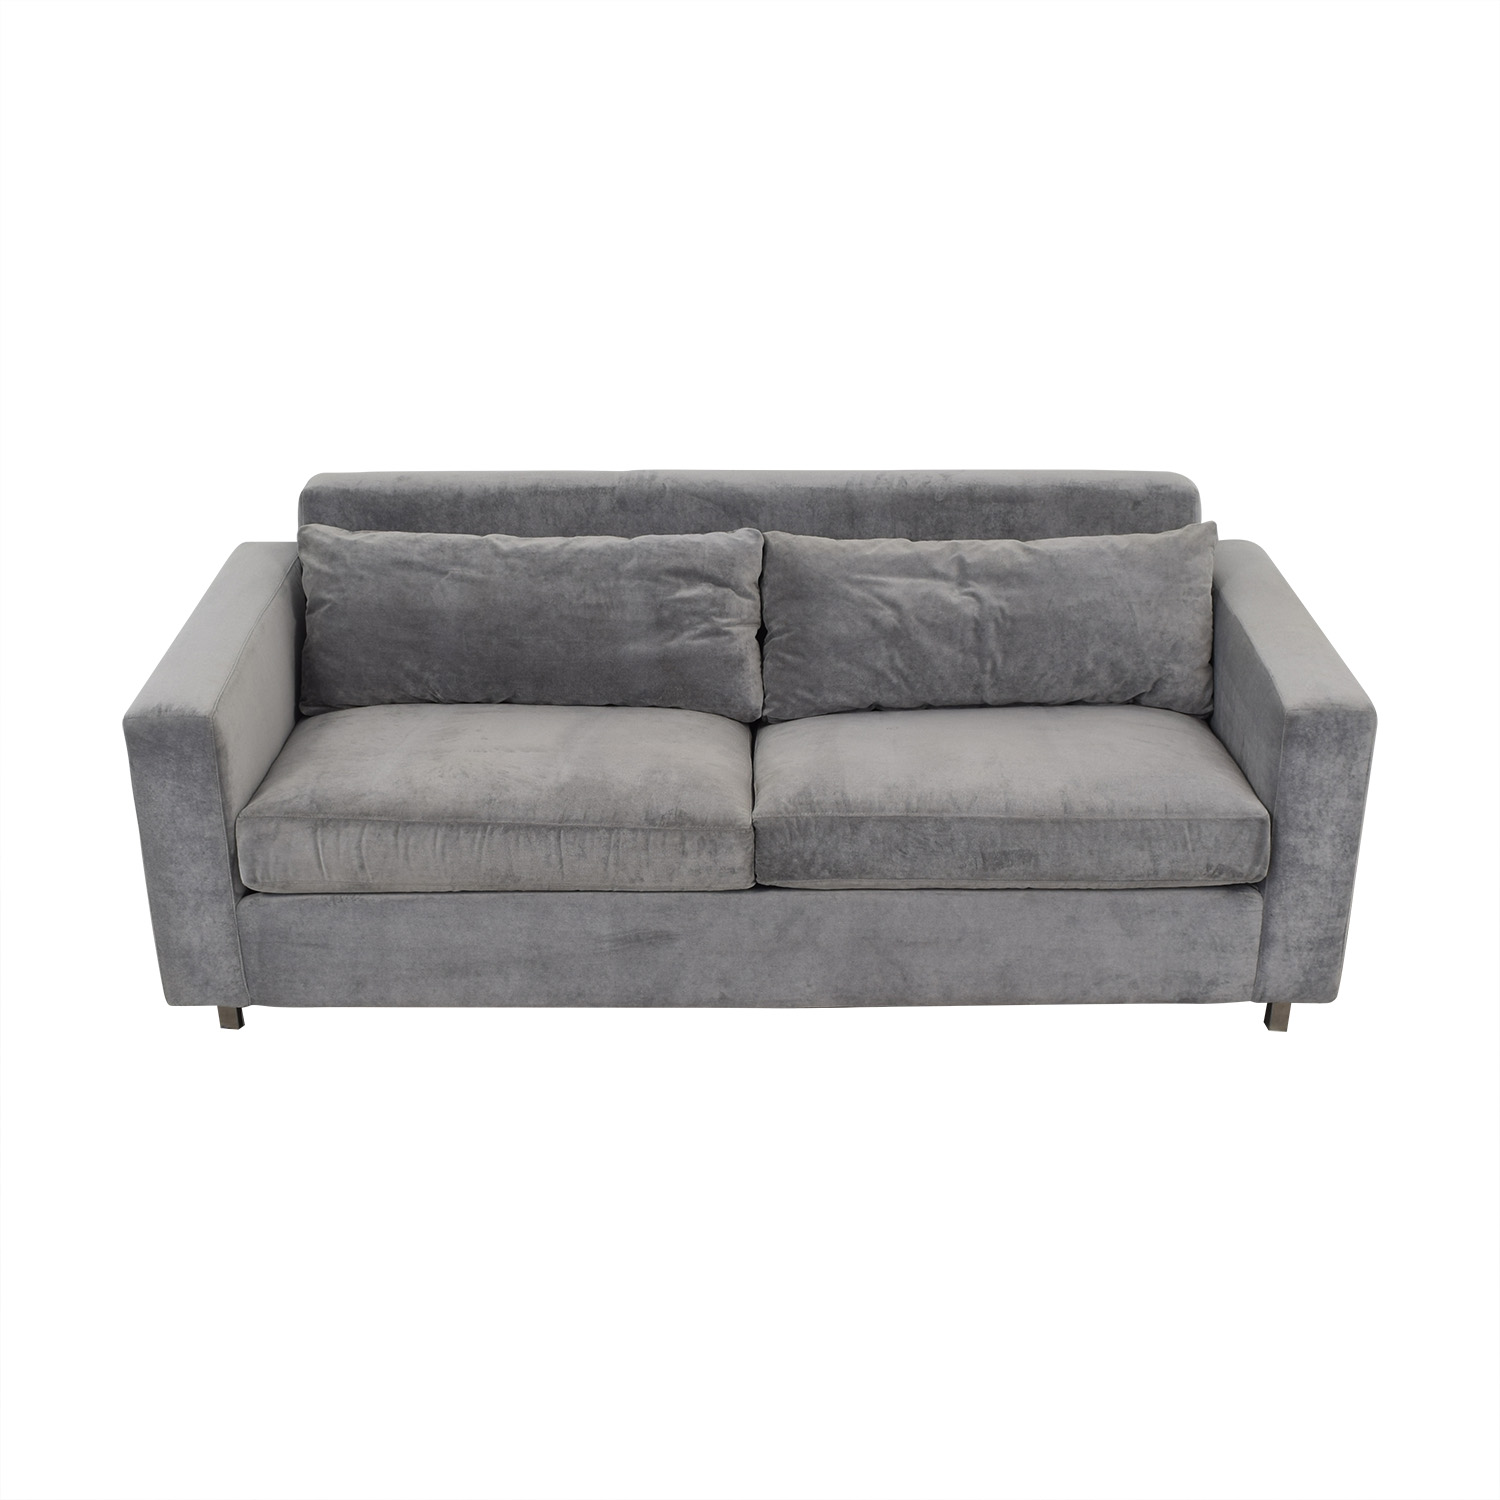 shop ABC Carpet & Home Cobble Hill Queen Lucali Sleeper Sofa ABC Carpet & Home